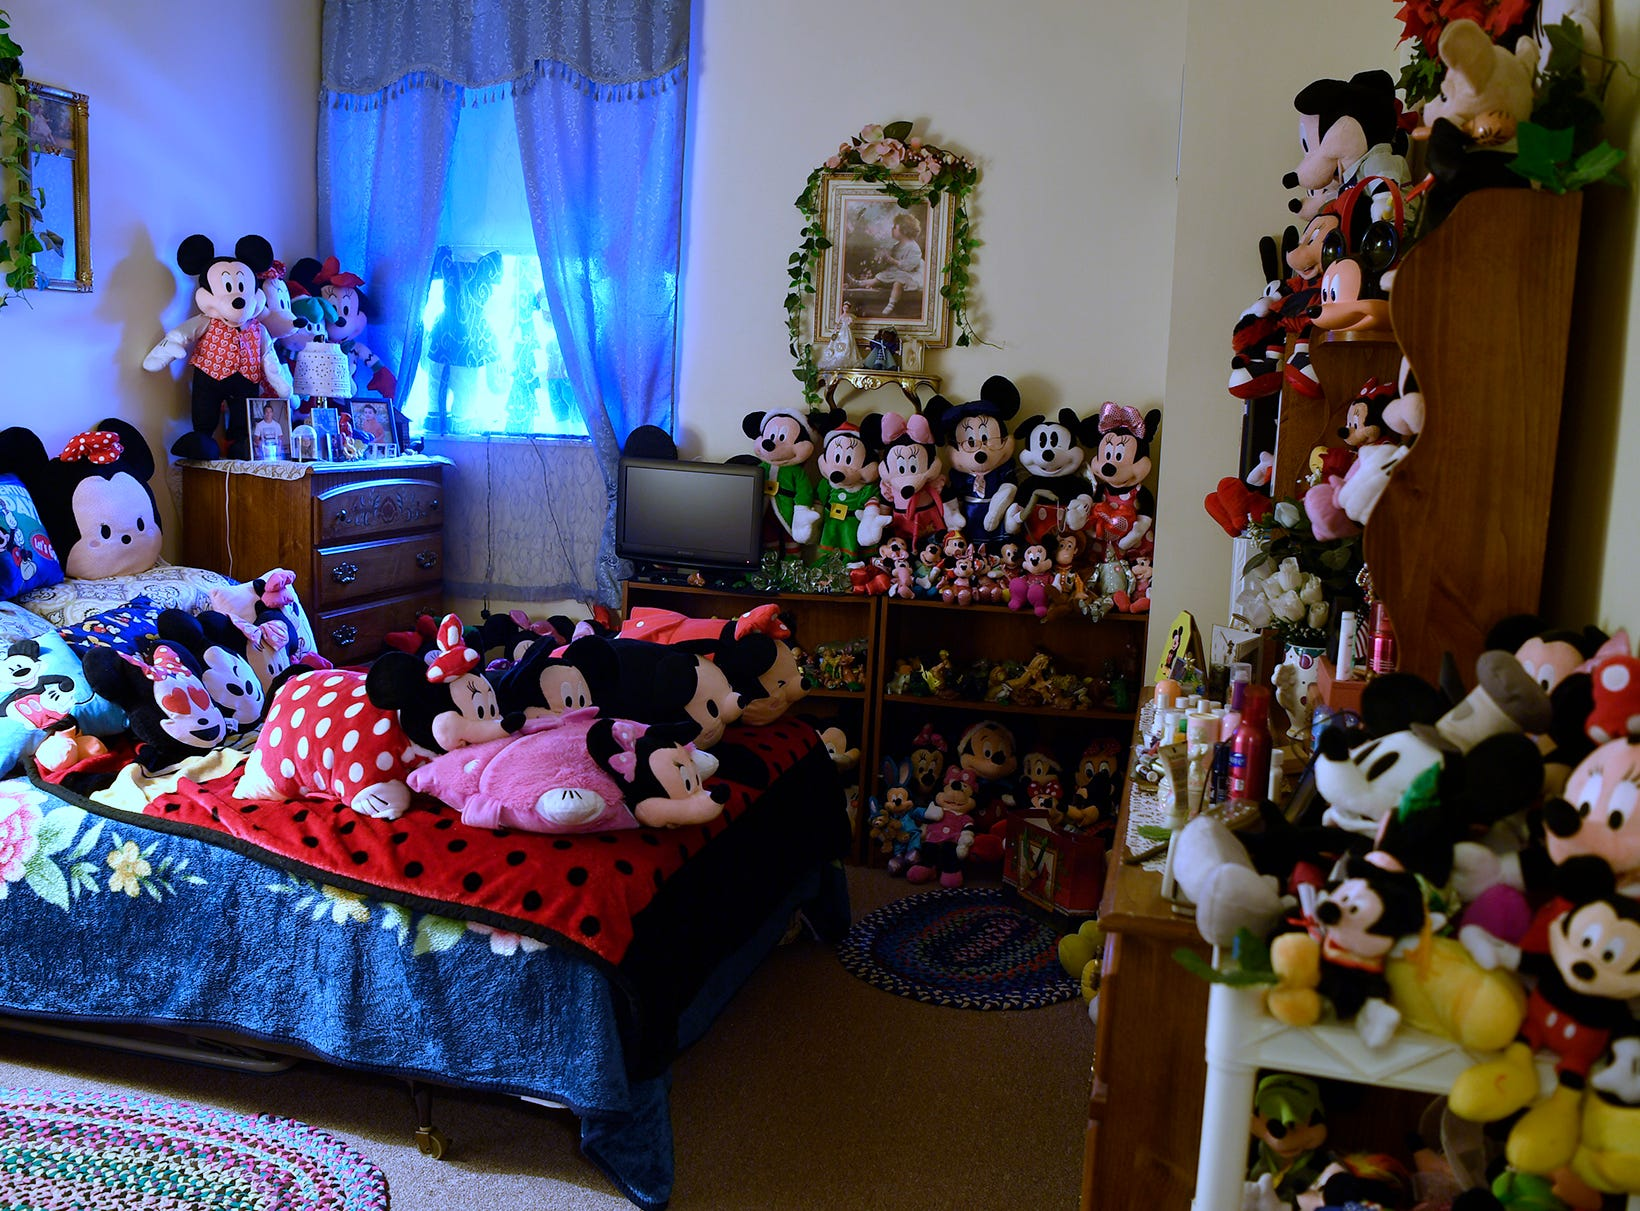 Shirley Hassler, 79 of West York has been collecting Mickey and Minnie Mouse memorabilia for decades. Her West King Street home is filled with more than 500 stuffed versions of Walt Disney's favorite mice, and she has more than 1200 items in her collection. Wednesday, November 28, 2018.  John A. Pavoncello photo